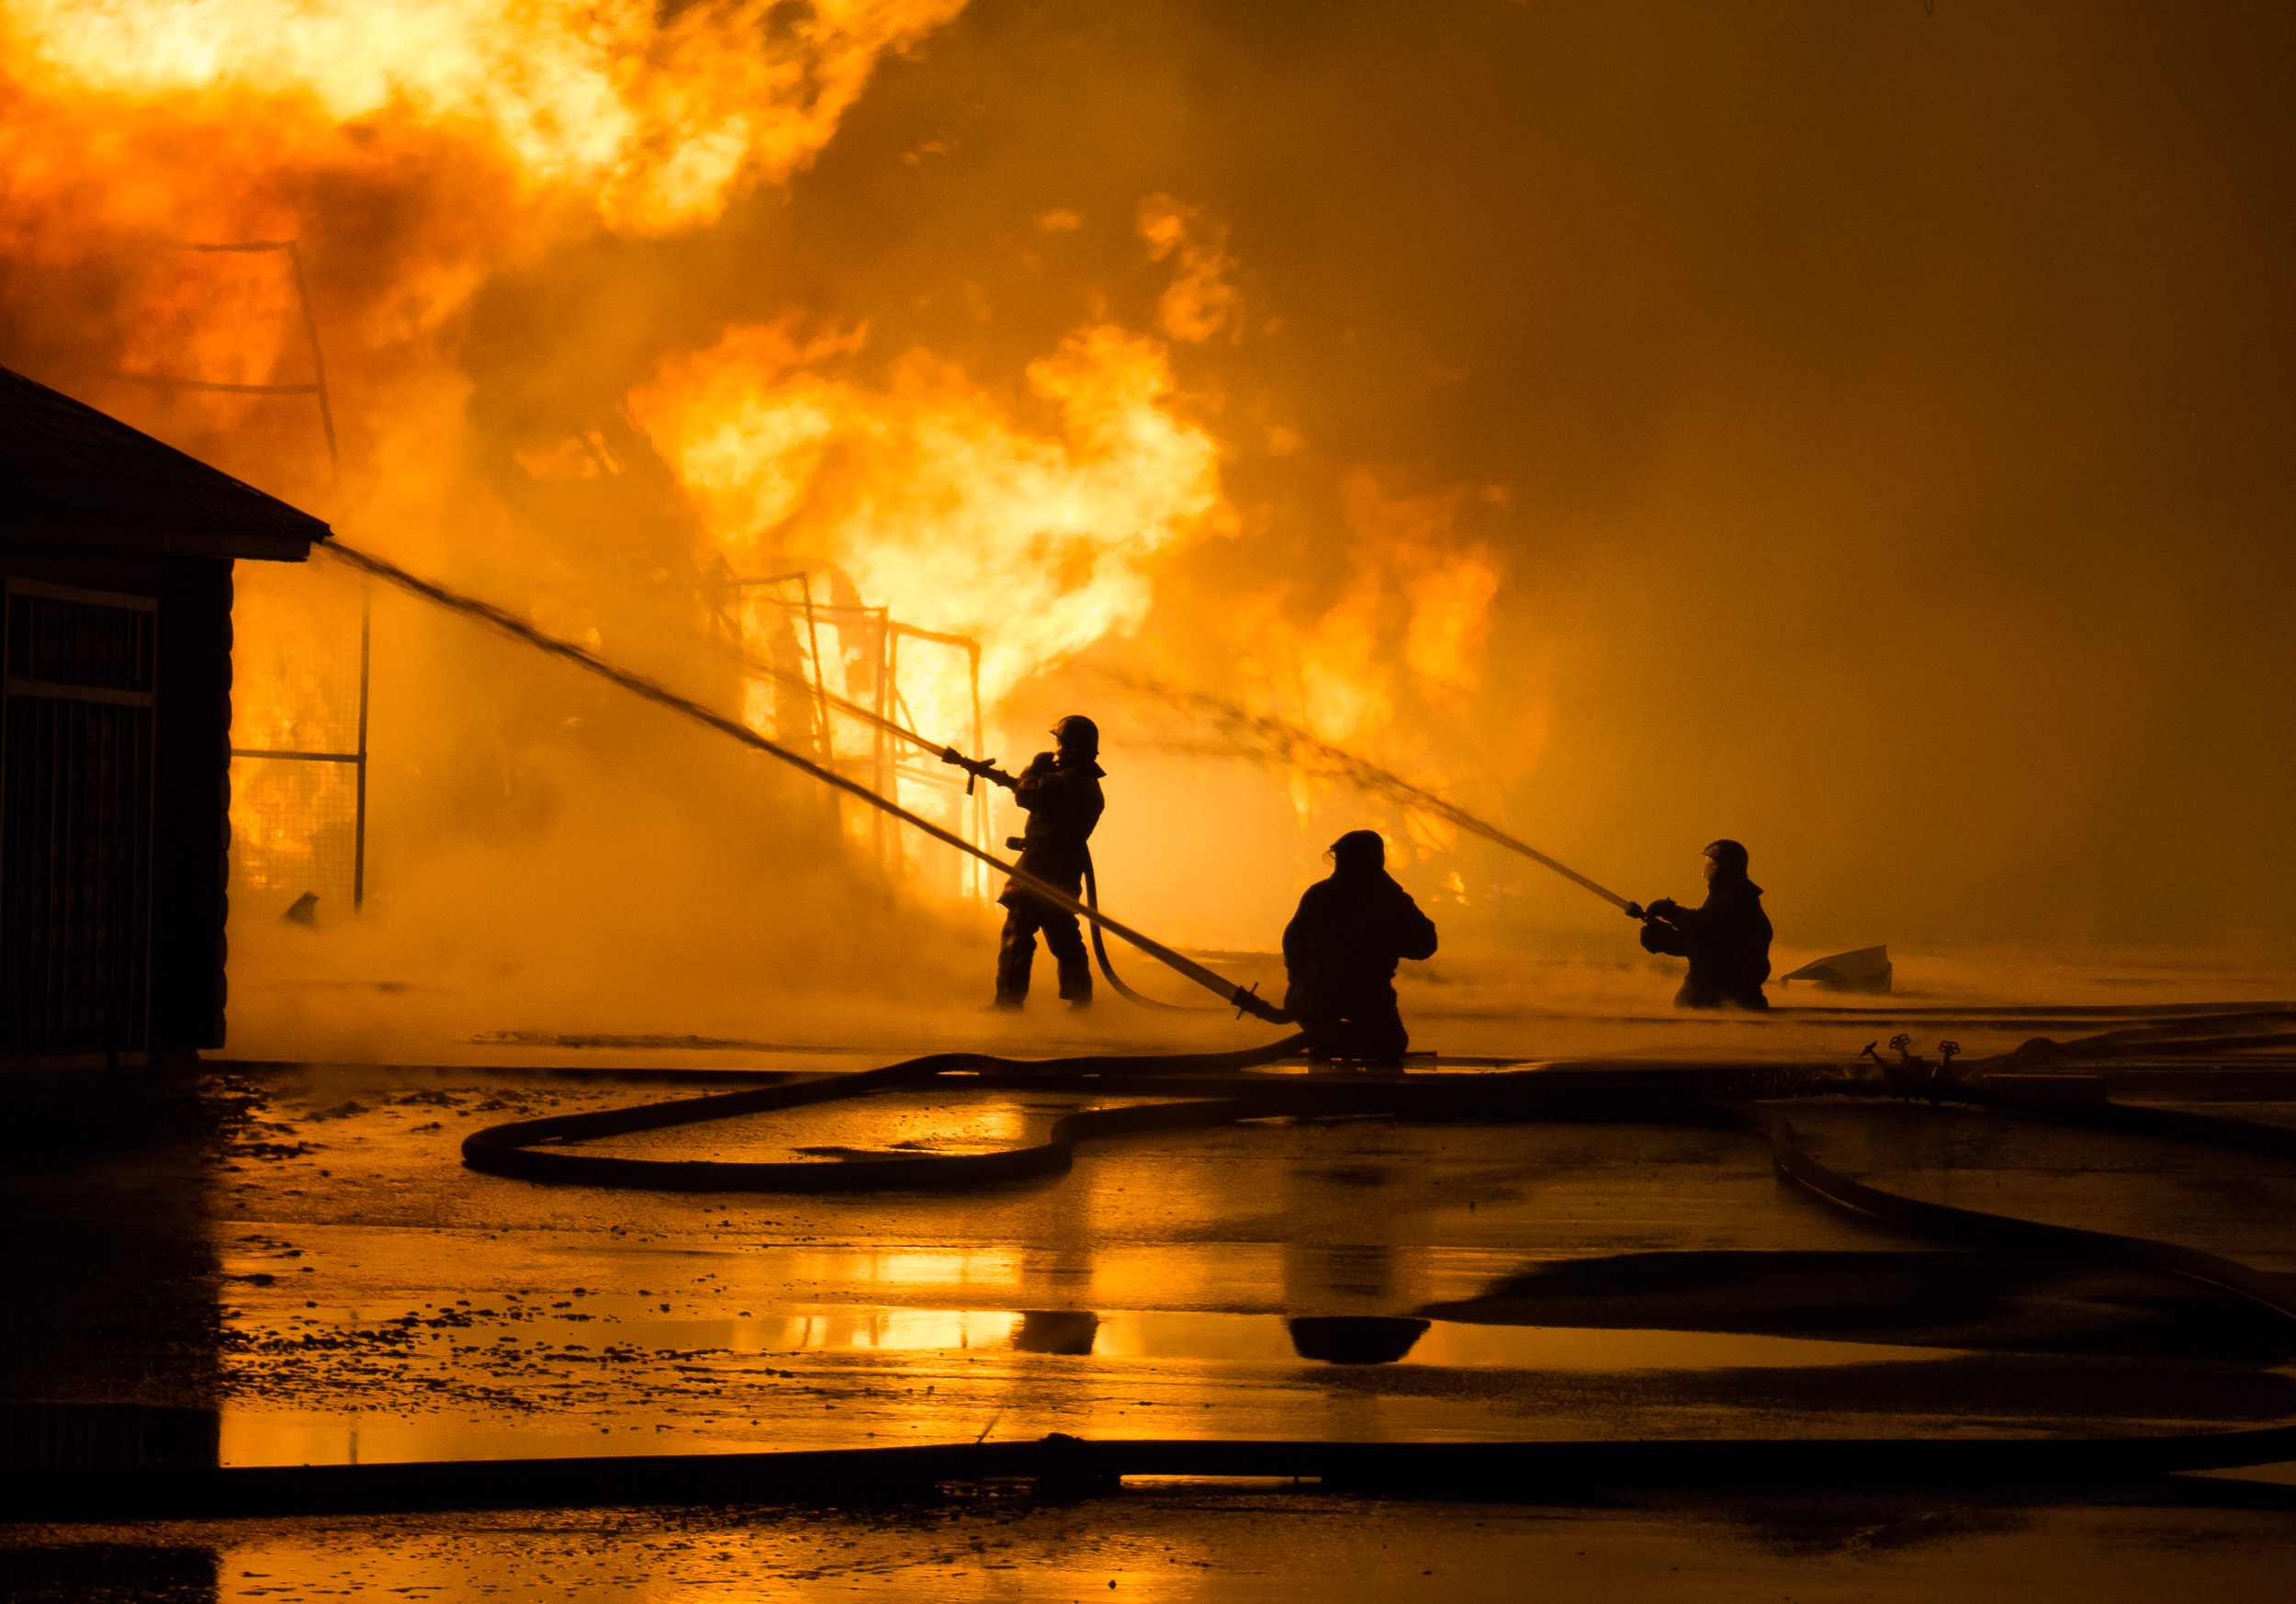 Firemen at work on fire.jpg